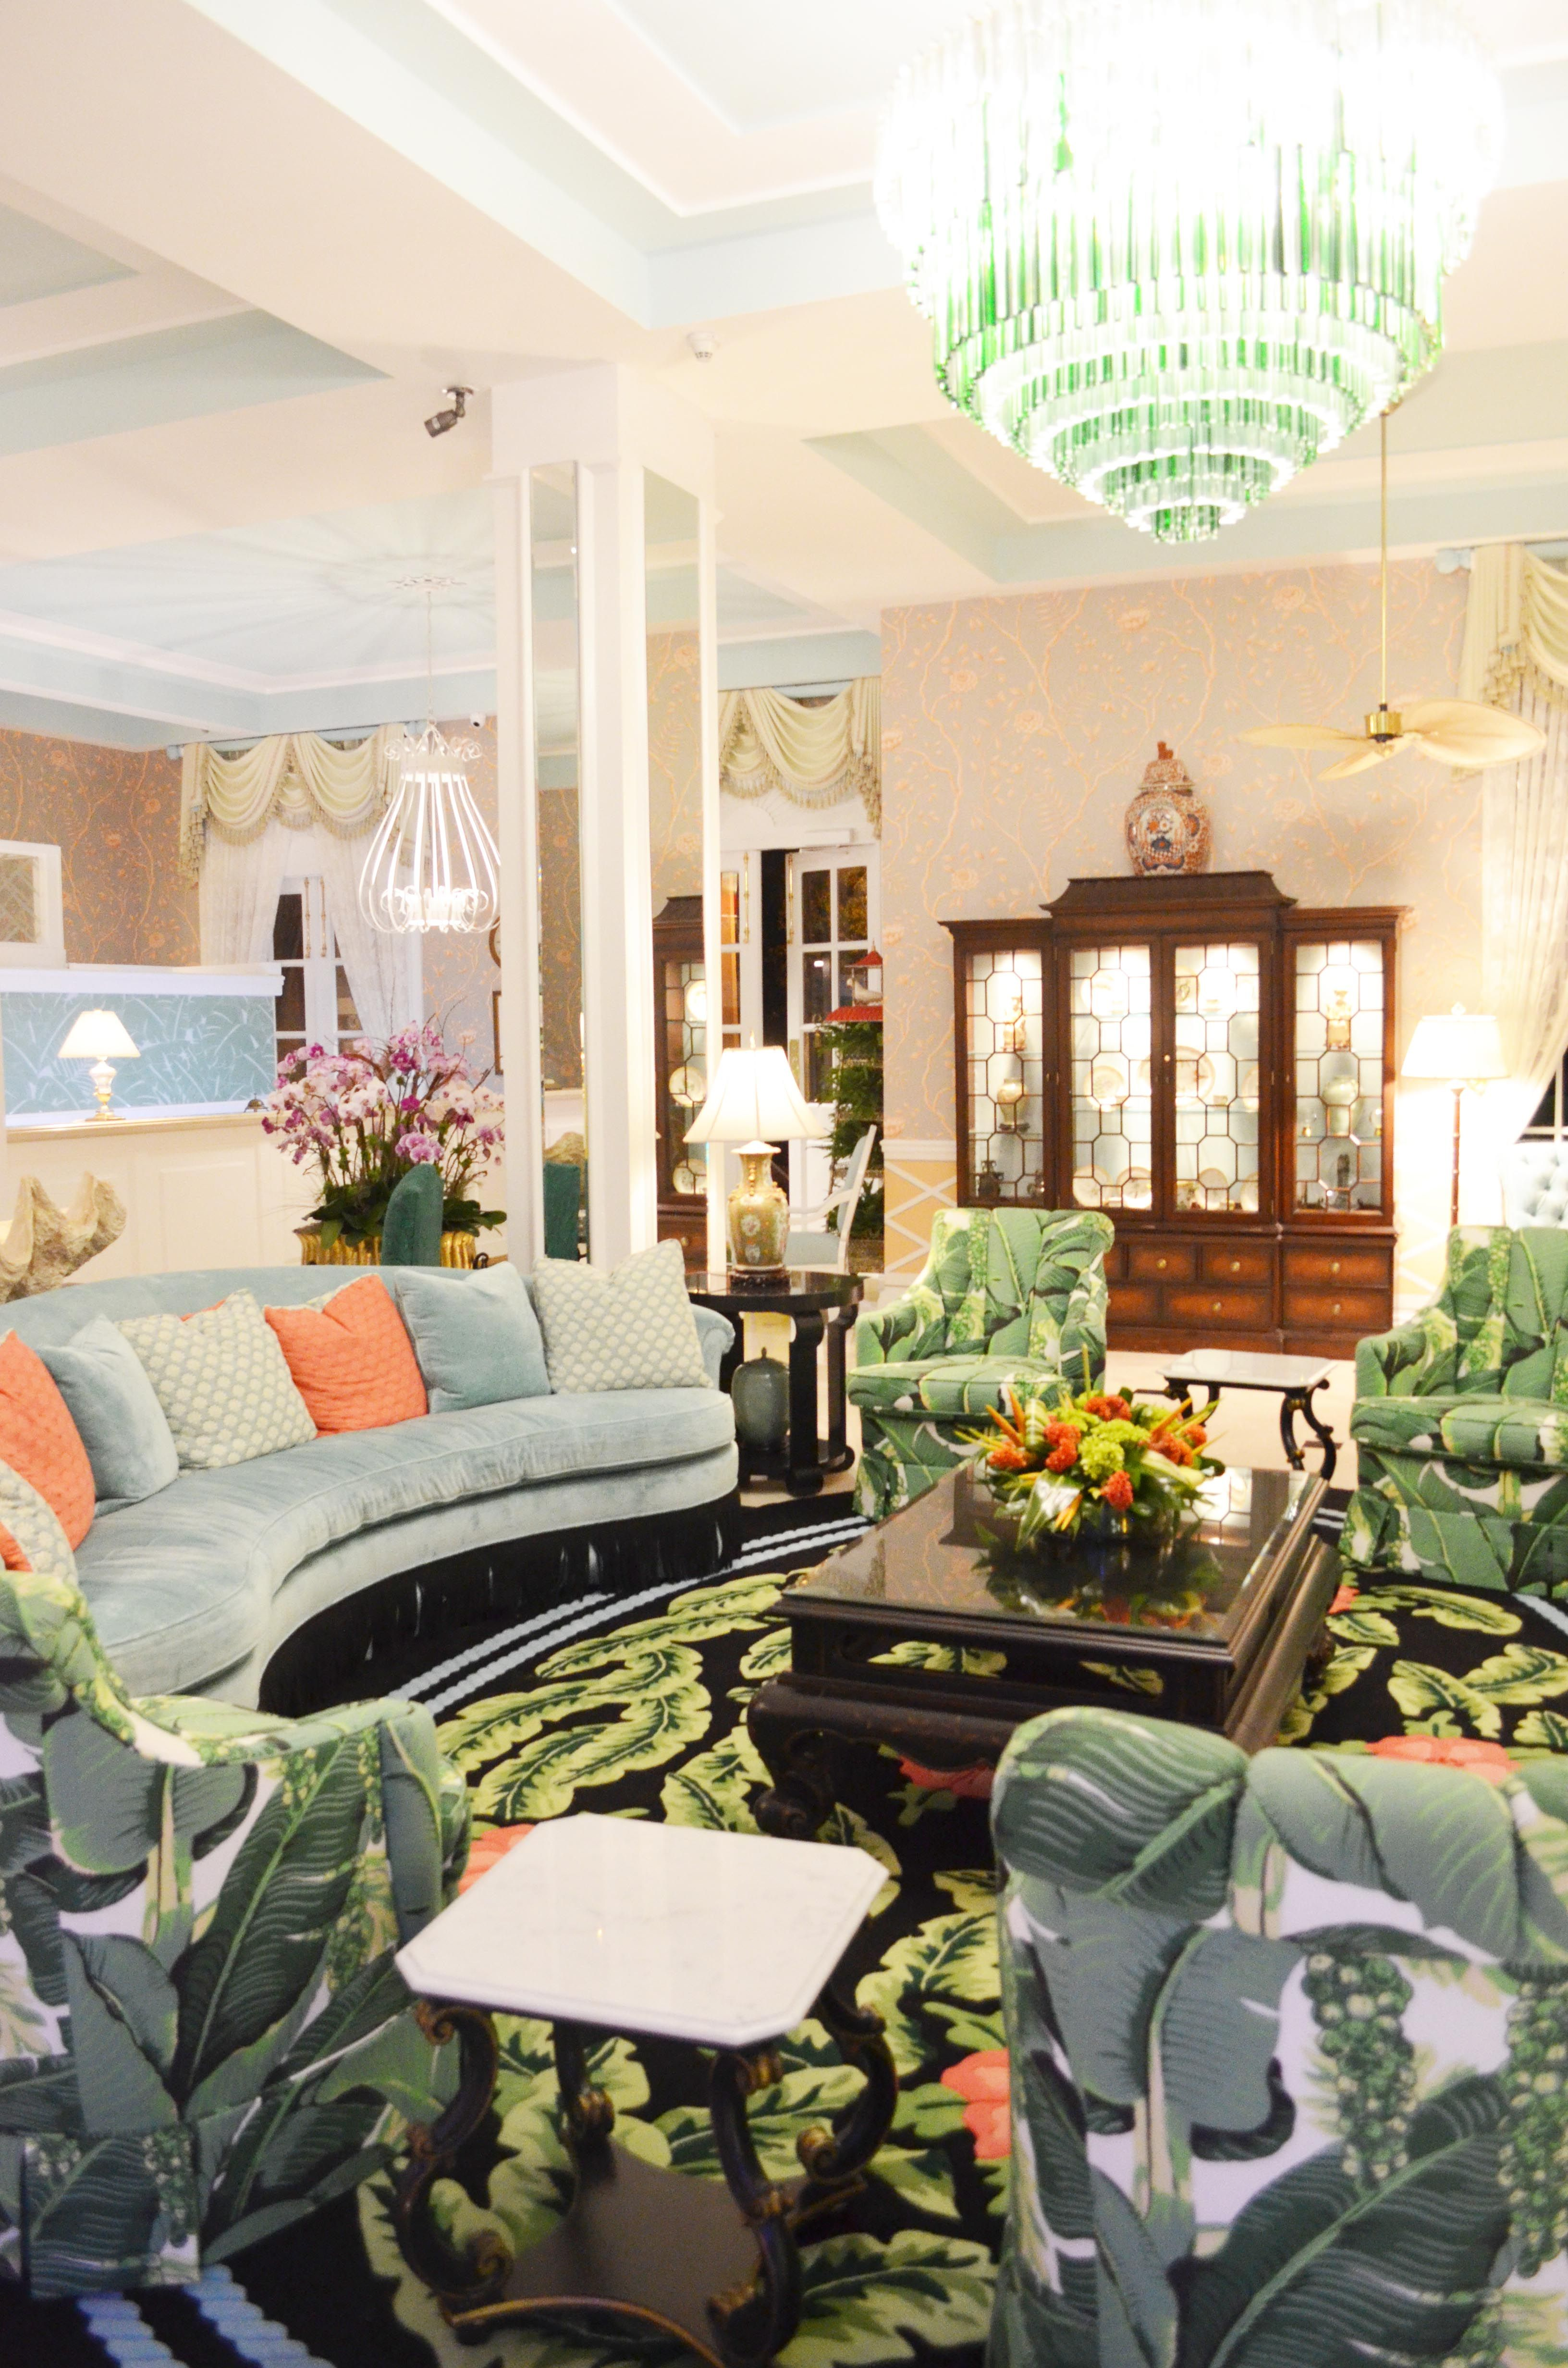 Palm Beach Chic Decor At The Colony Hotel In Palm Beach With